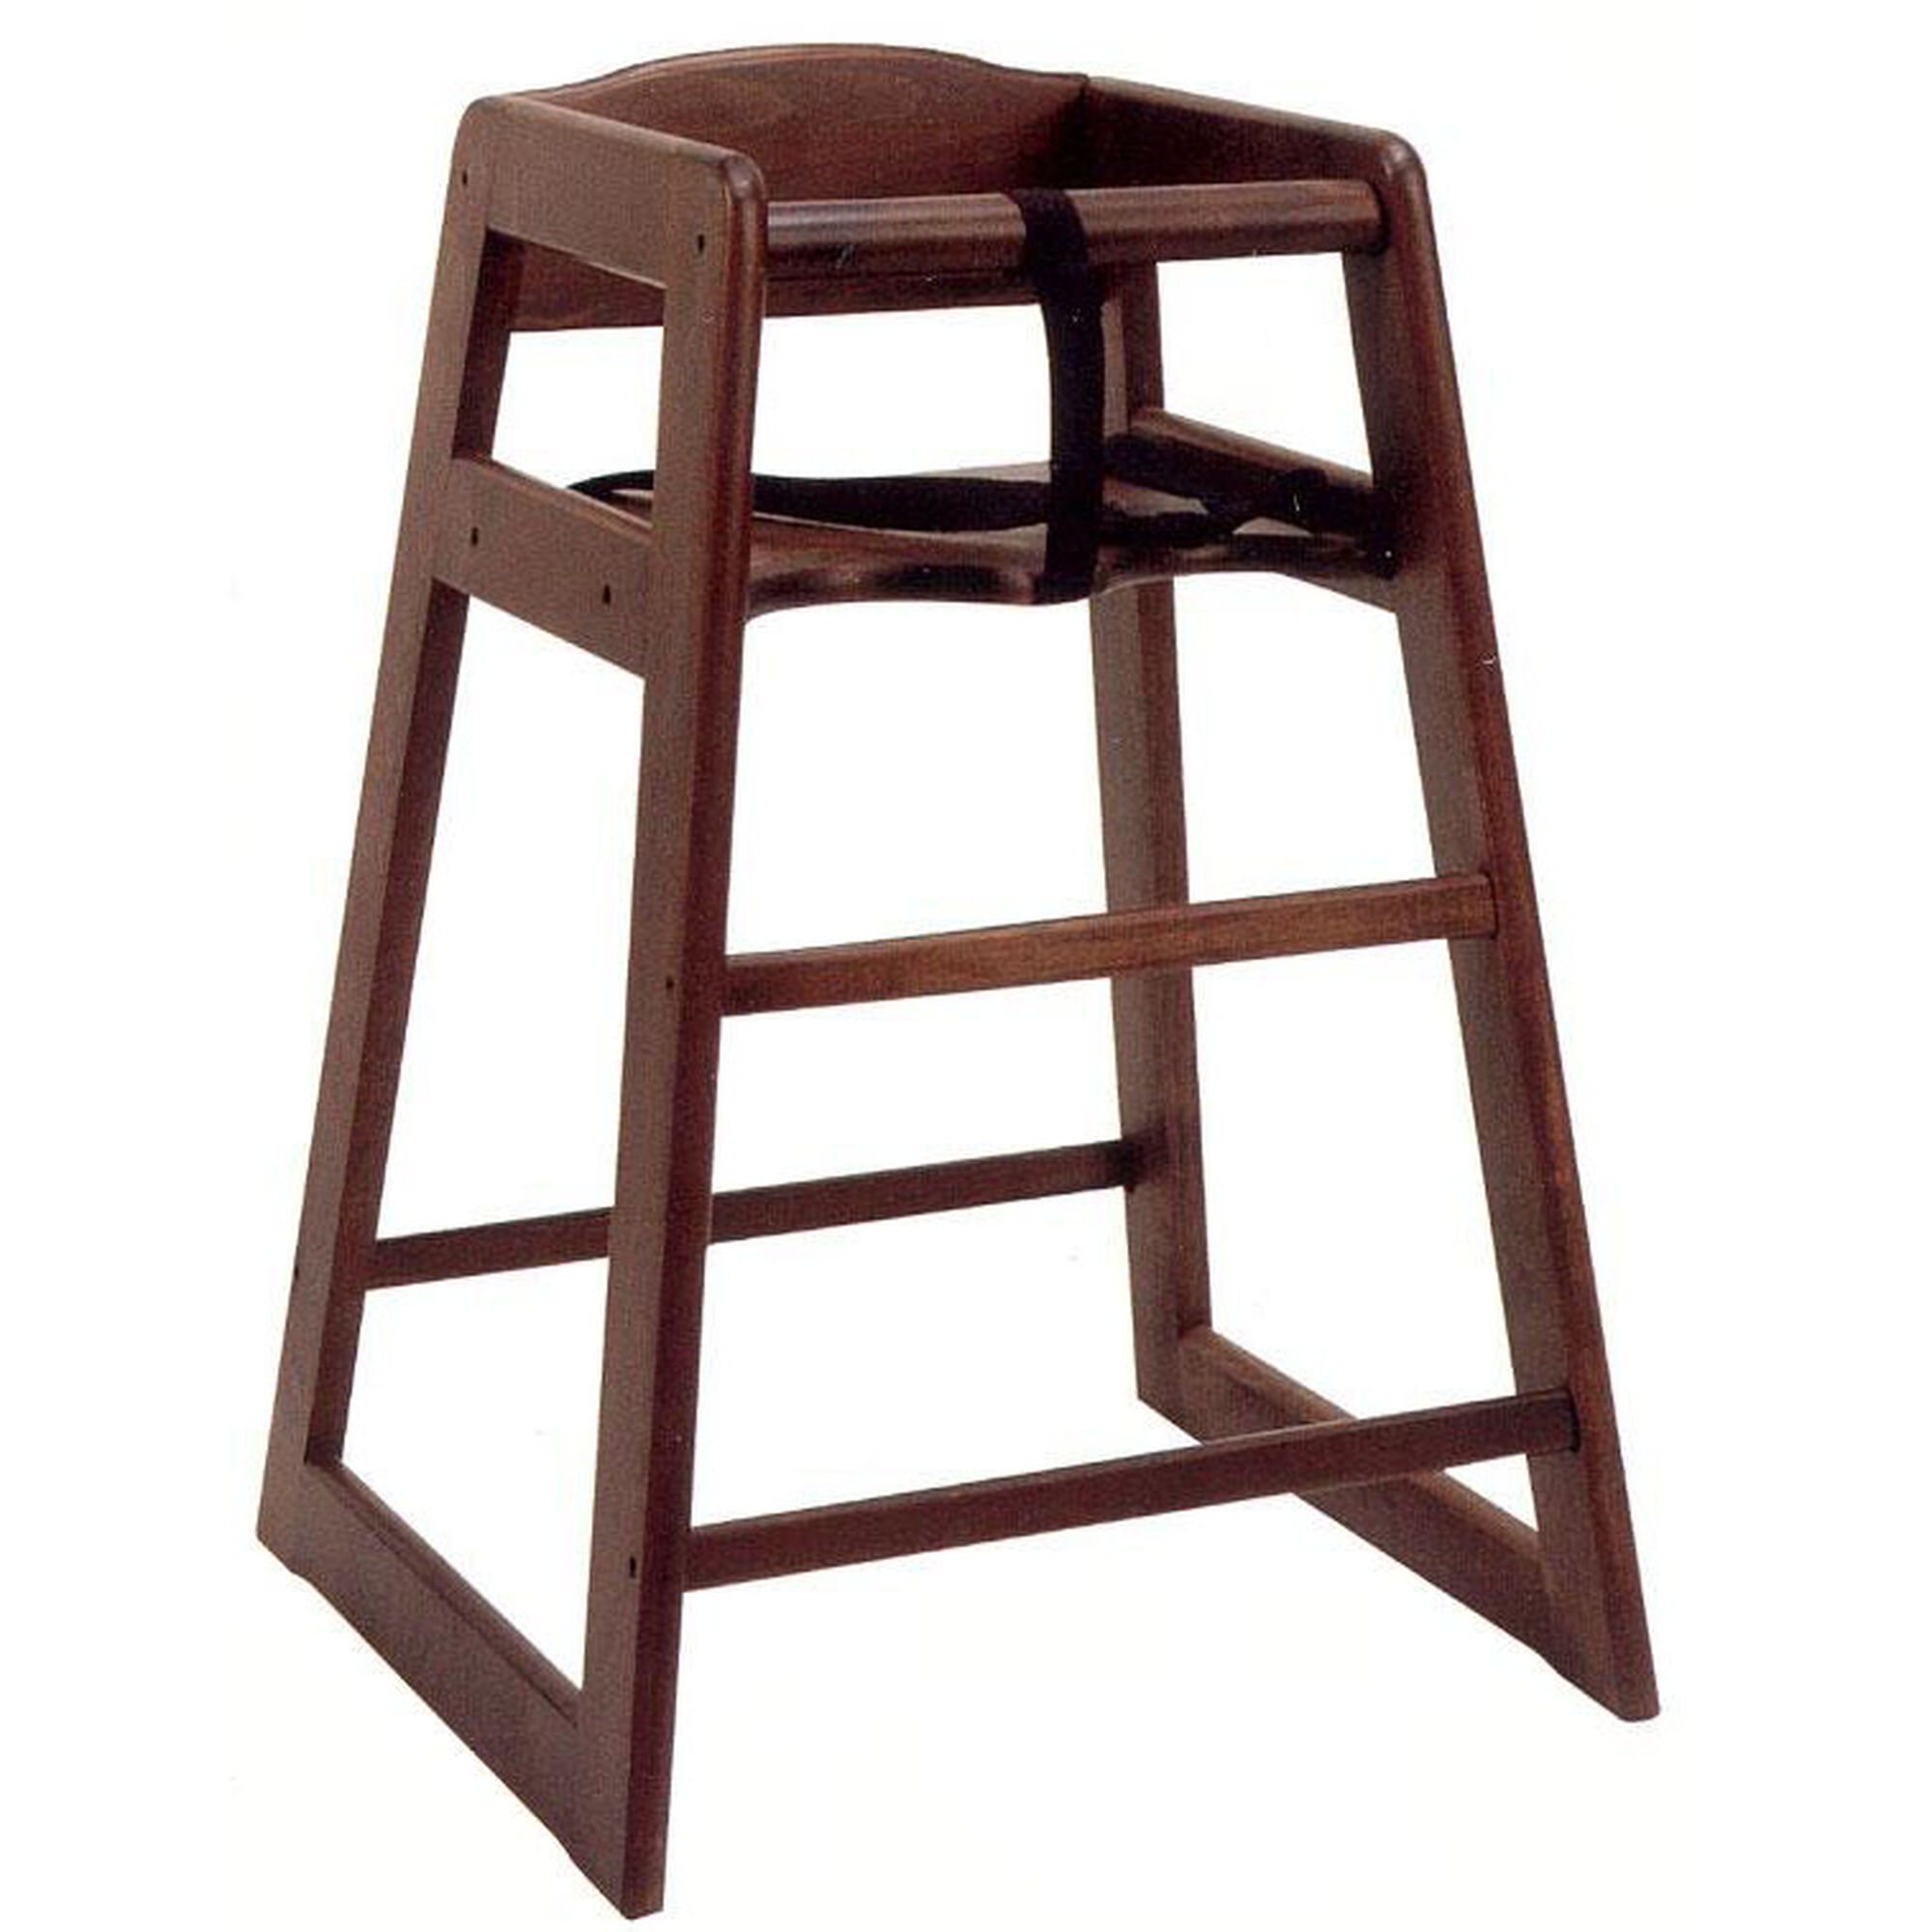 Our Solid Wood High Chair is on sale now.